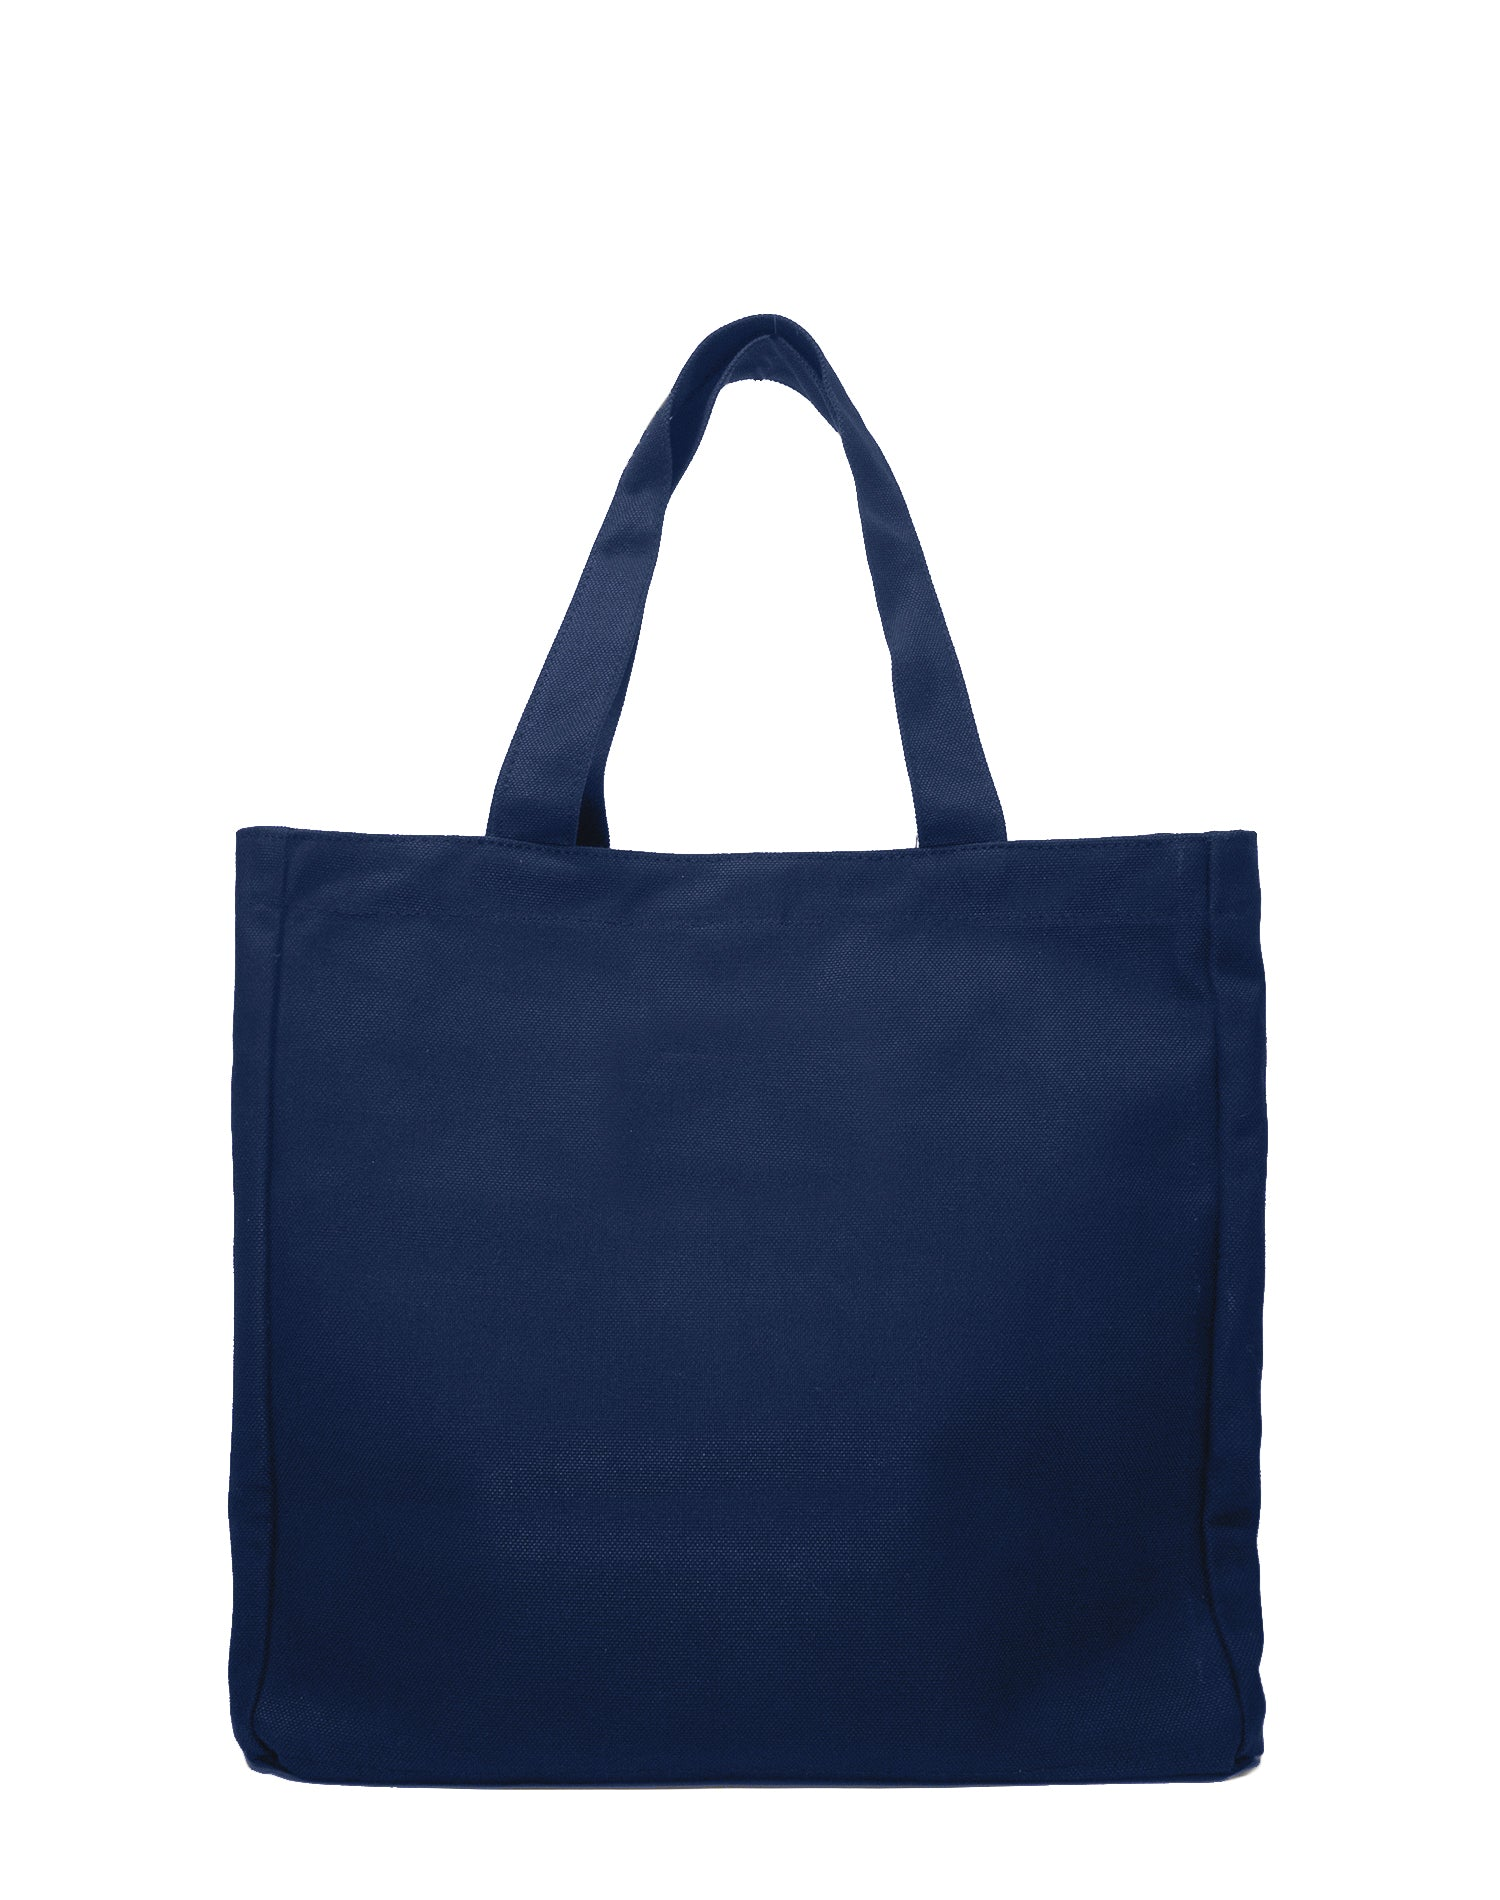 Navy Basic Canvas Tote Bag.藏青色純棉環保袋